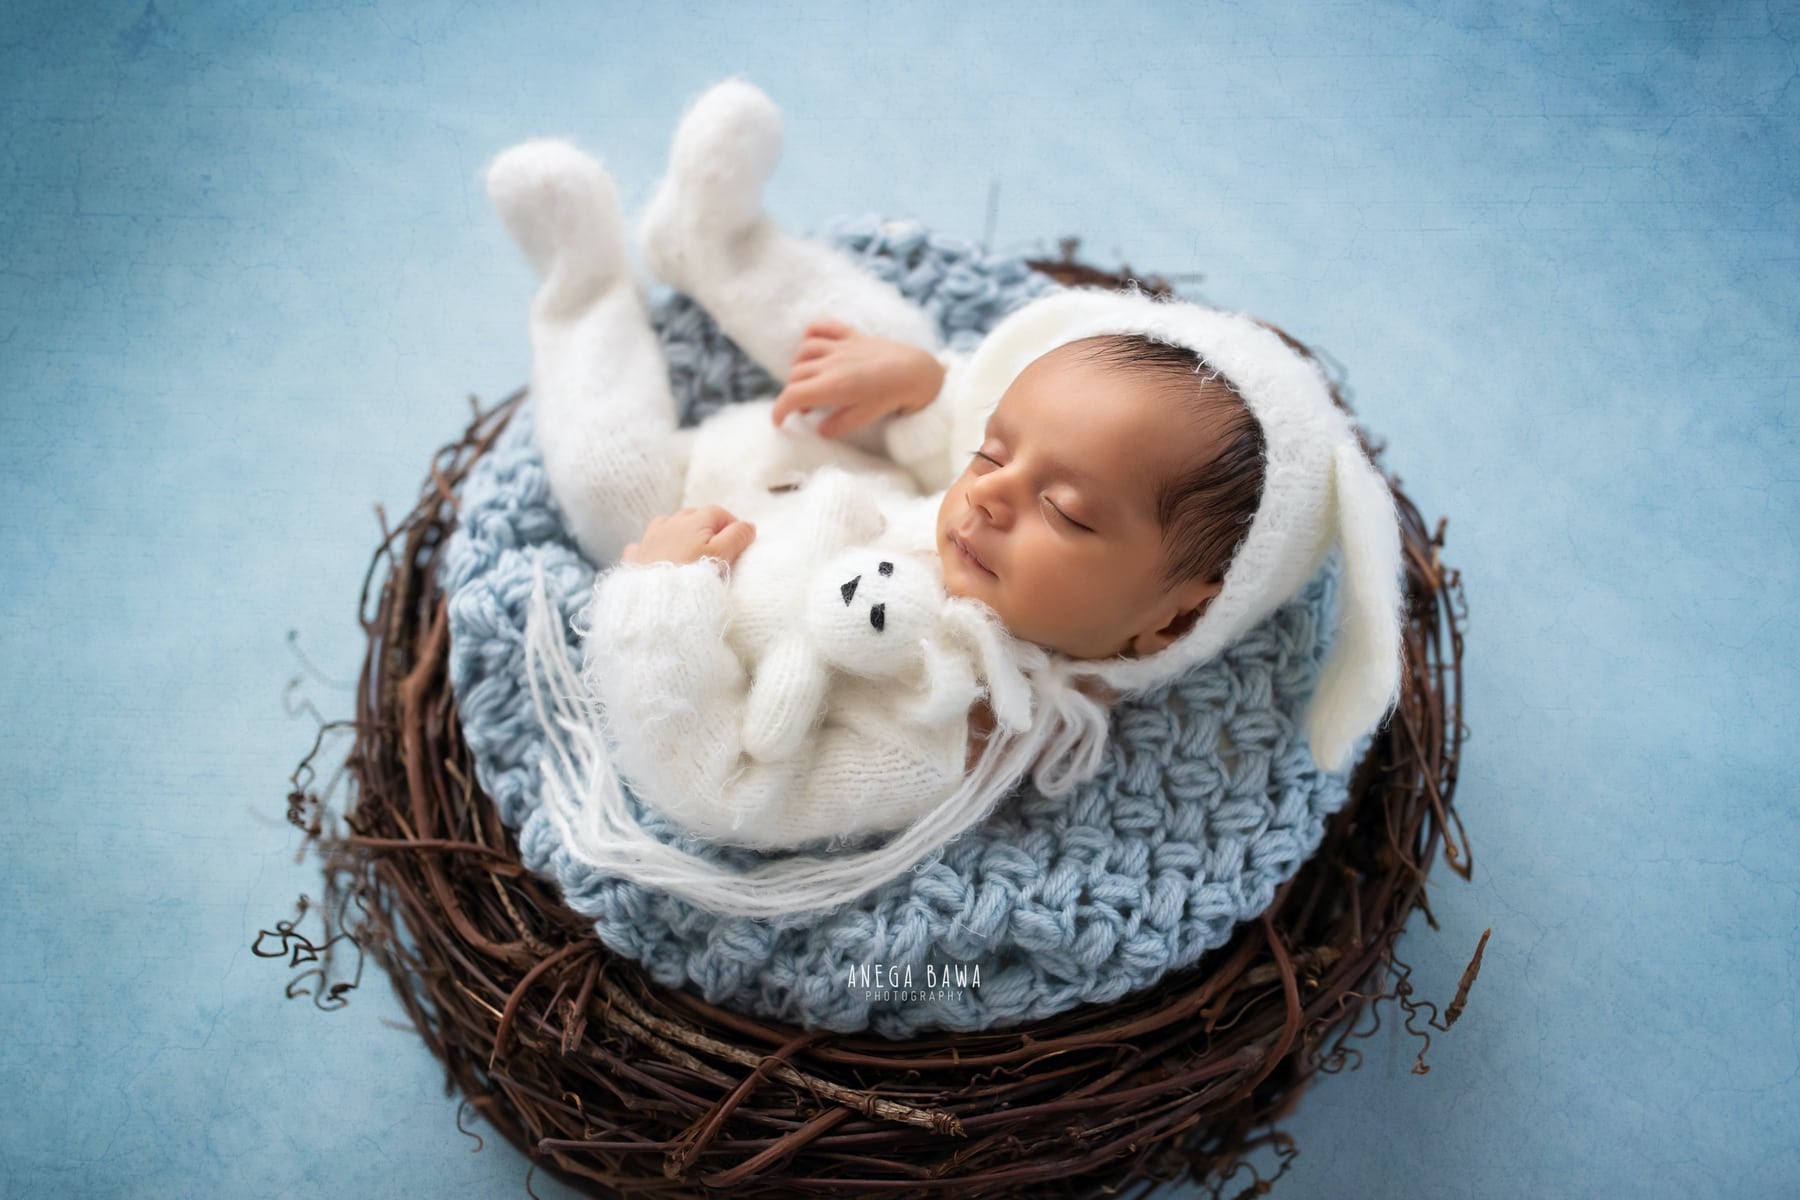 blue newborn photography delhi 23 days baby boy photoshoot gurgaon anega bawa